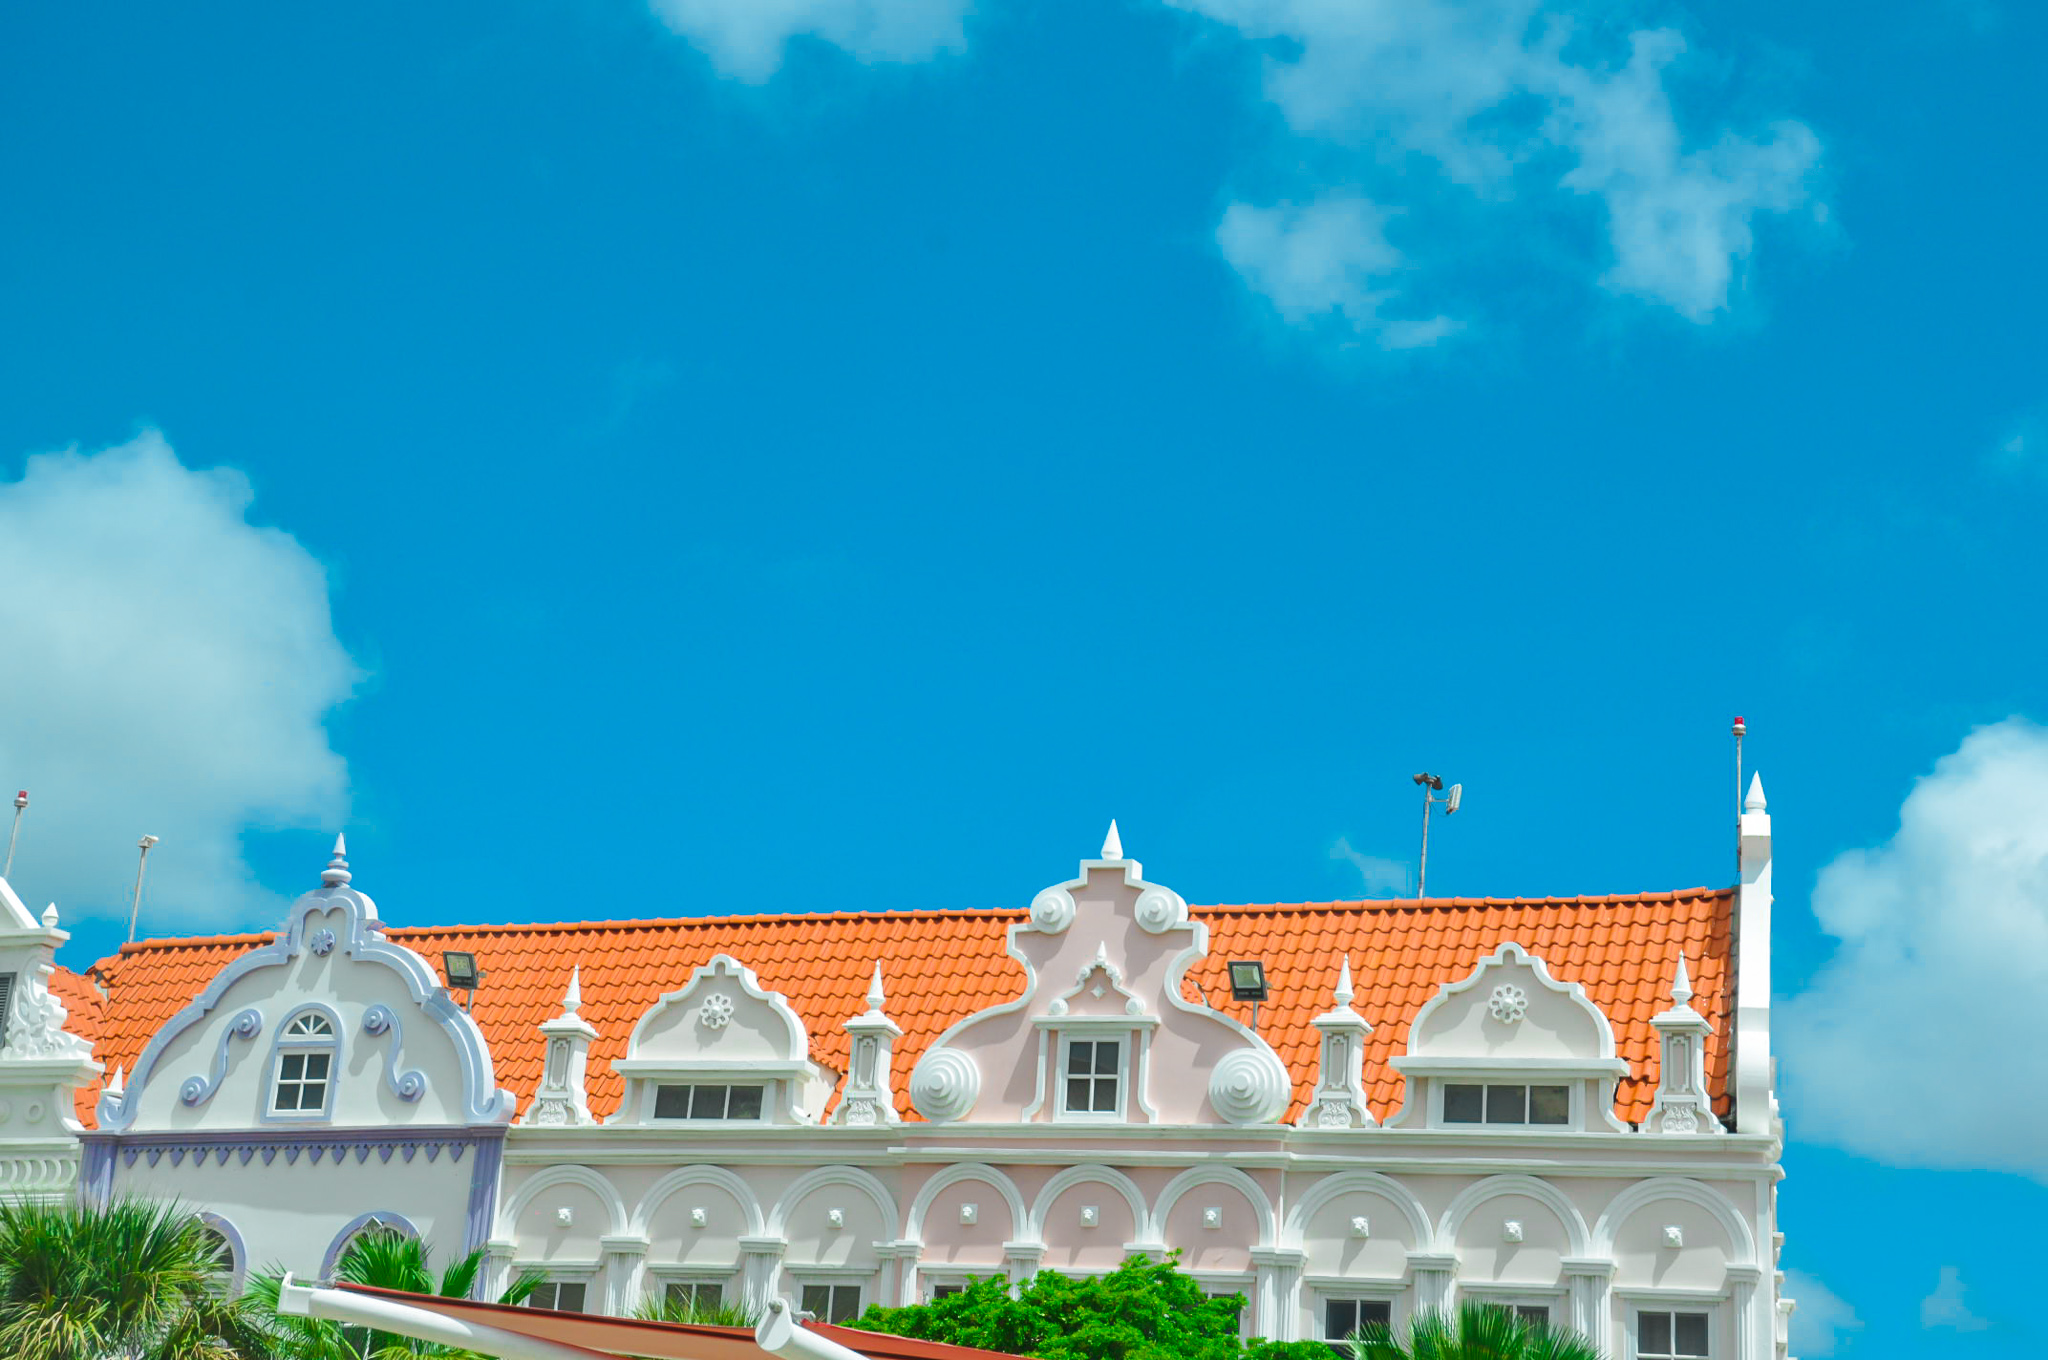 Oranjestad, translated as orange town from Dutch, has been the capital of Aruba since 1797. Brought to you by JetBlue Vacations.